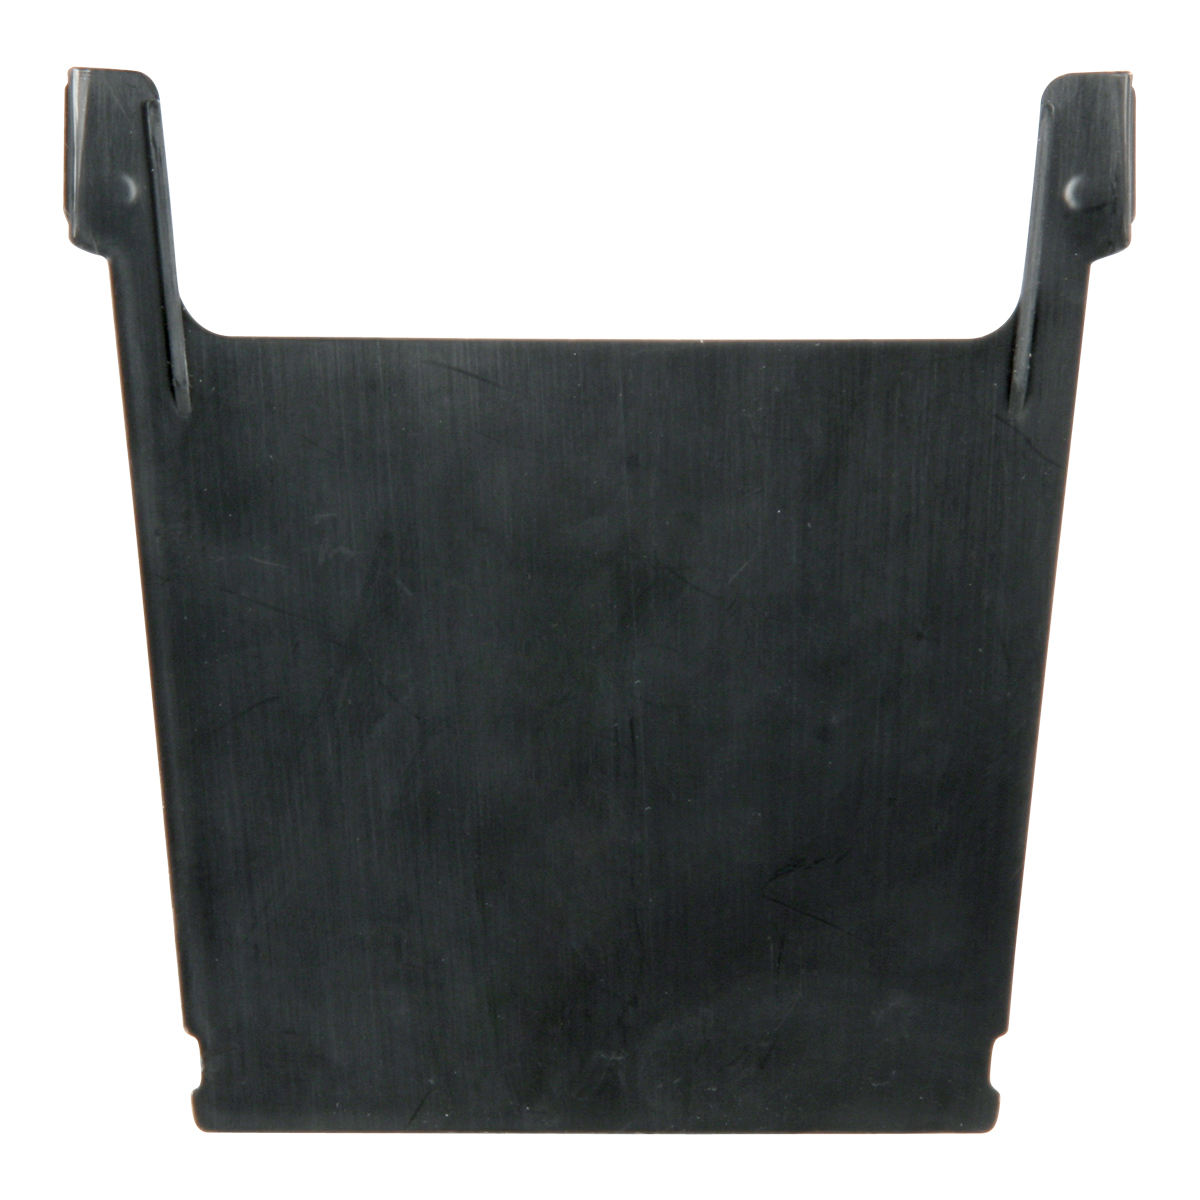 Divider for System Bin 30312/30318, 6 Pack, Black (40312).  This item sold in carton quantities of 1.